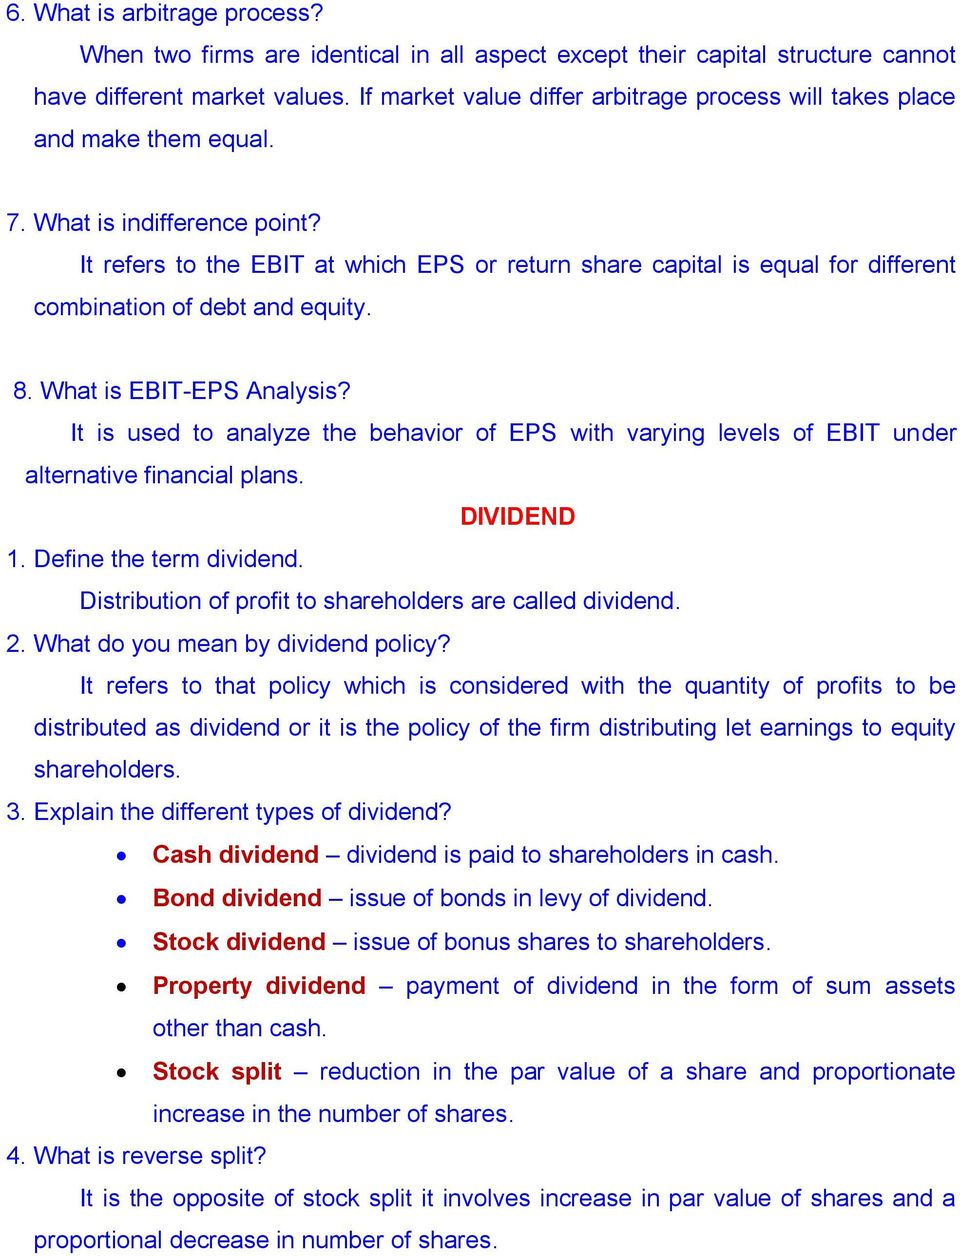 It refers to the EBIT at which EPS or return share capital is equal for different combination of debt and equity. 8. What is EBIT-EPS Analysis?